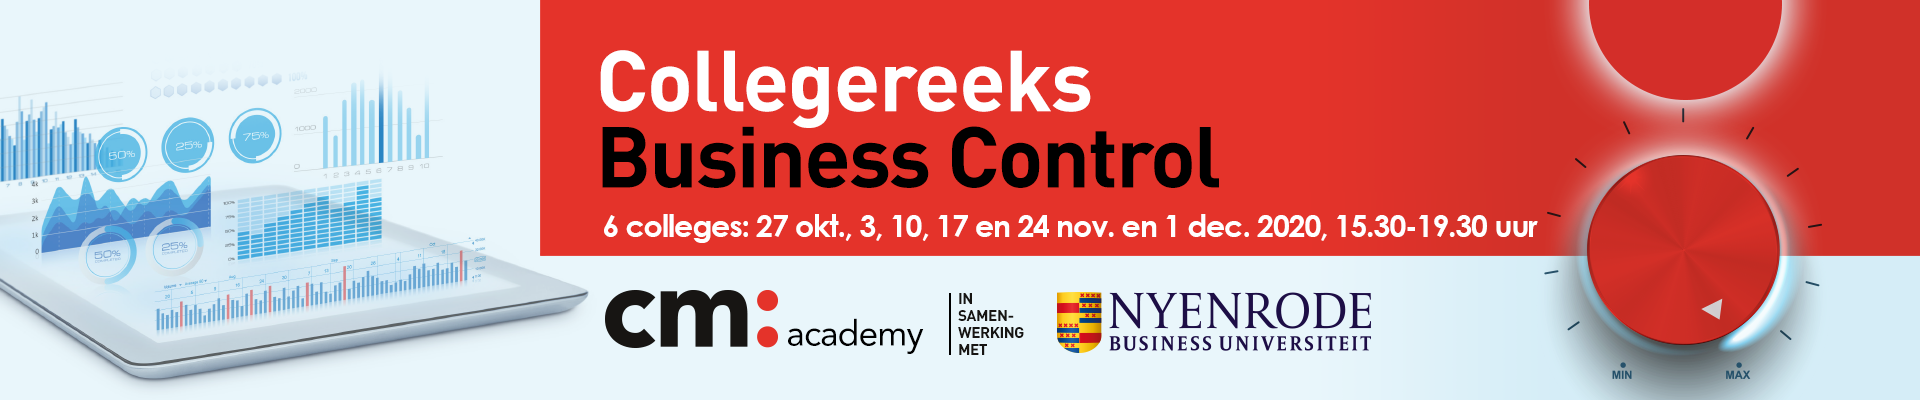 Collegereeks Controller als Business Partner